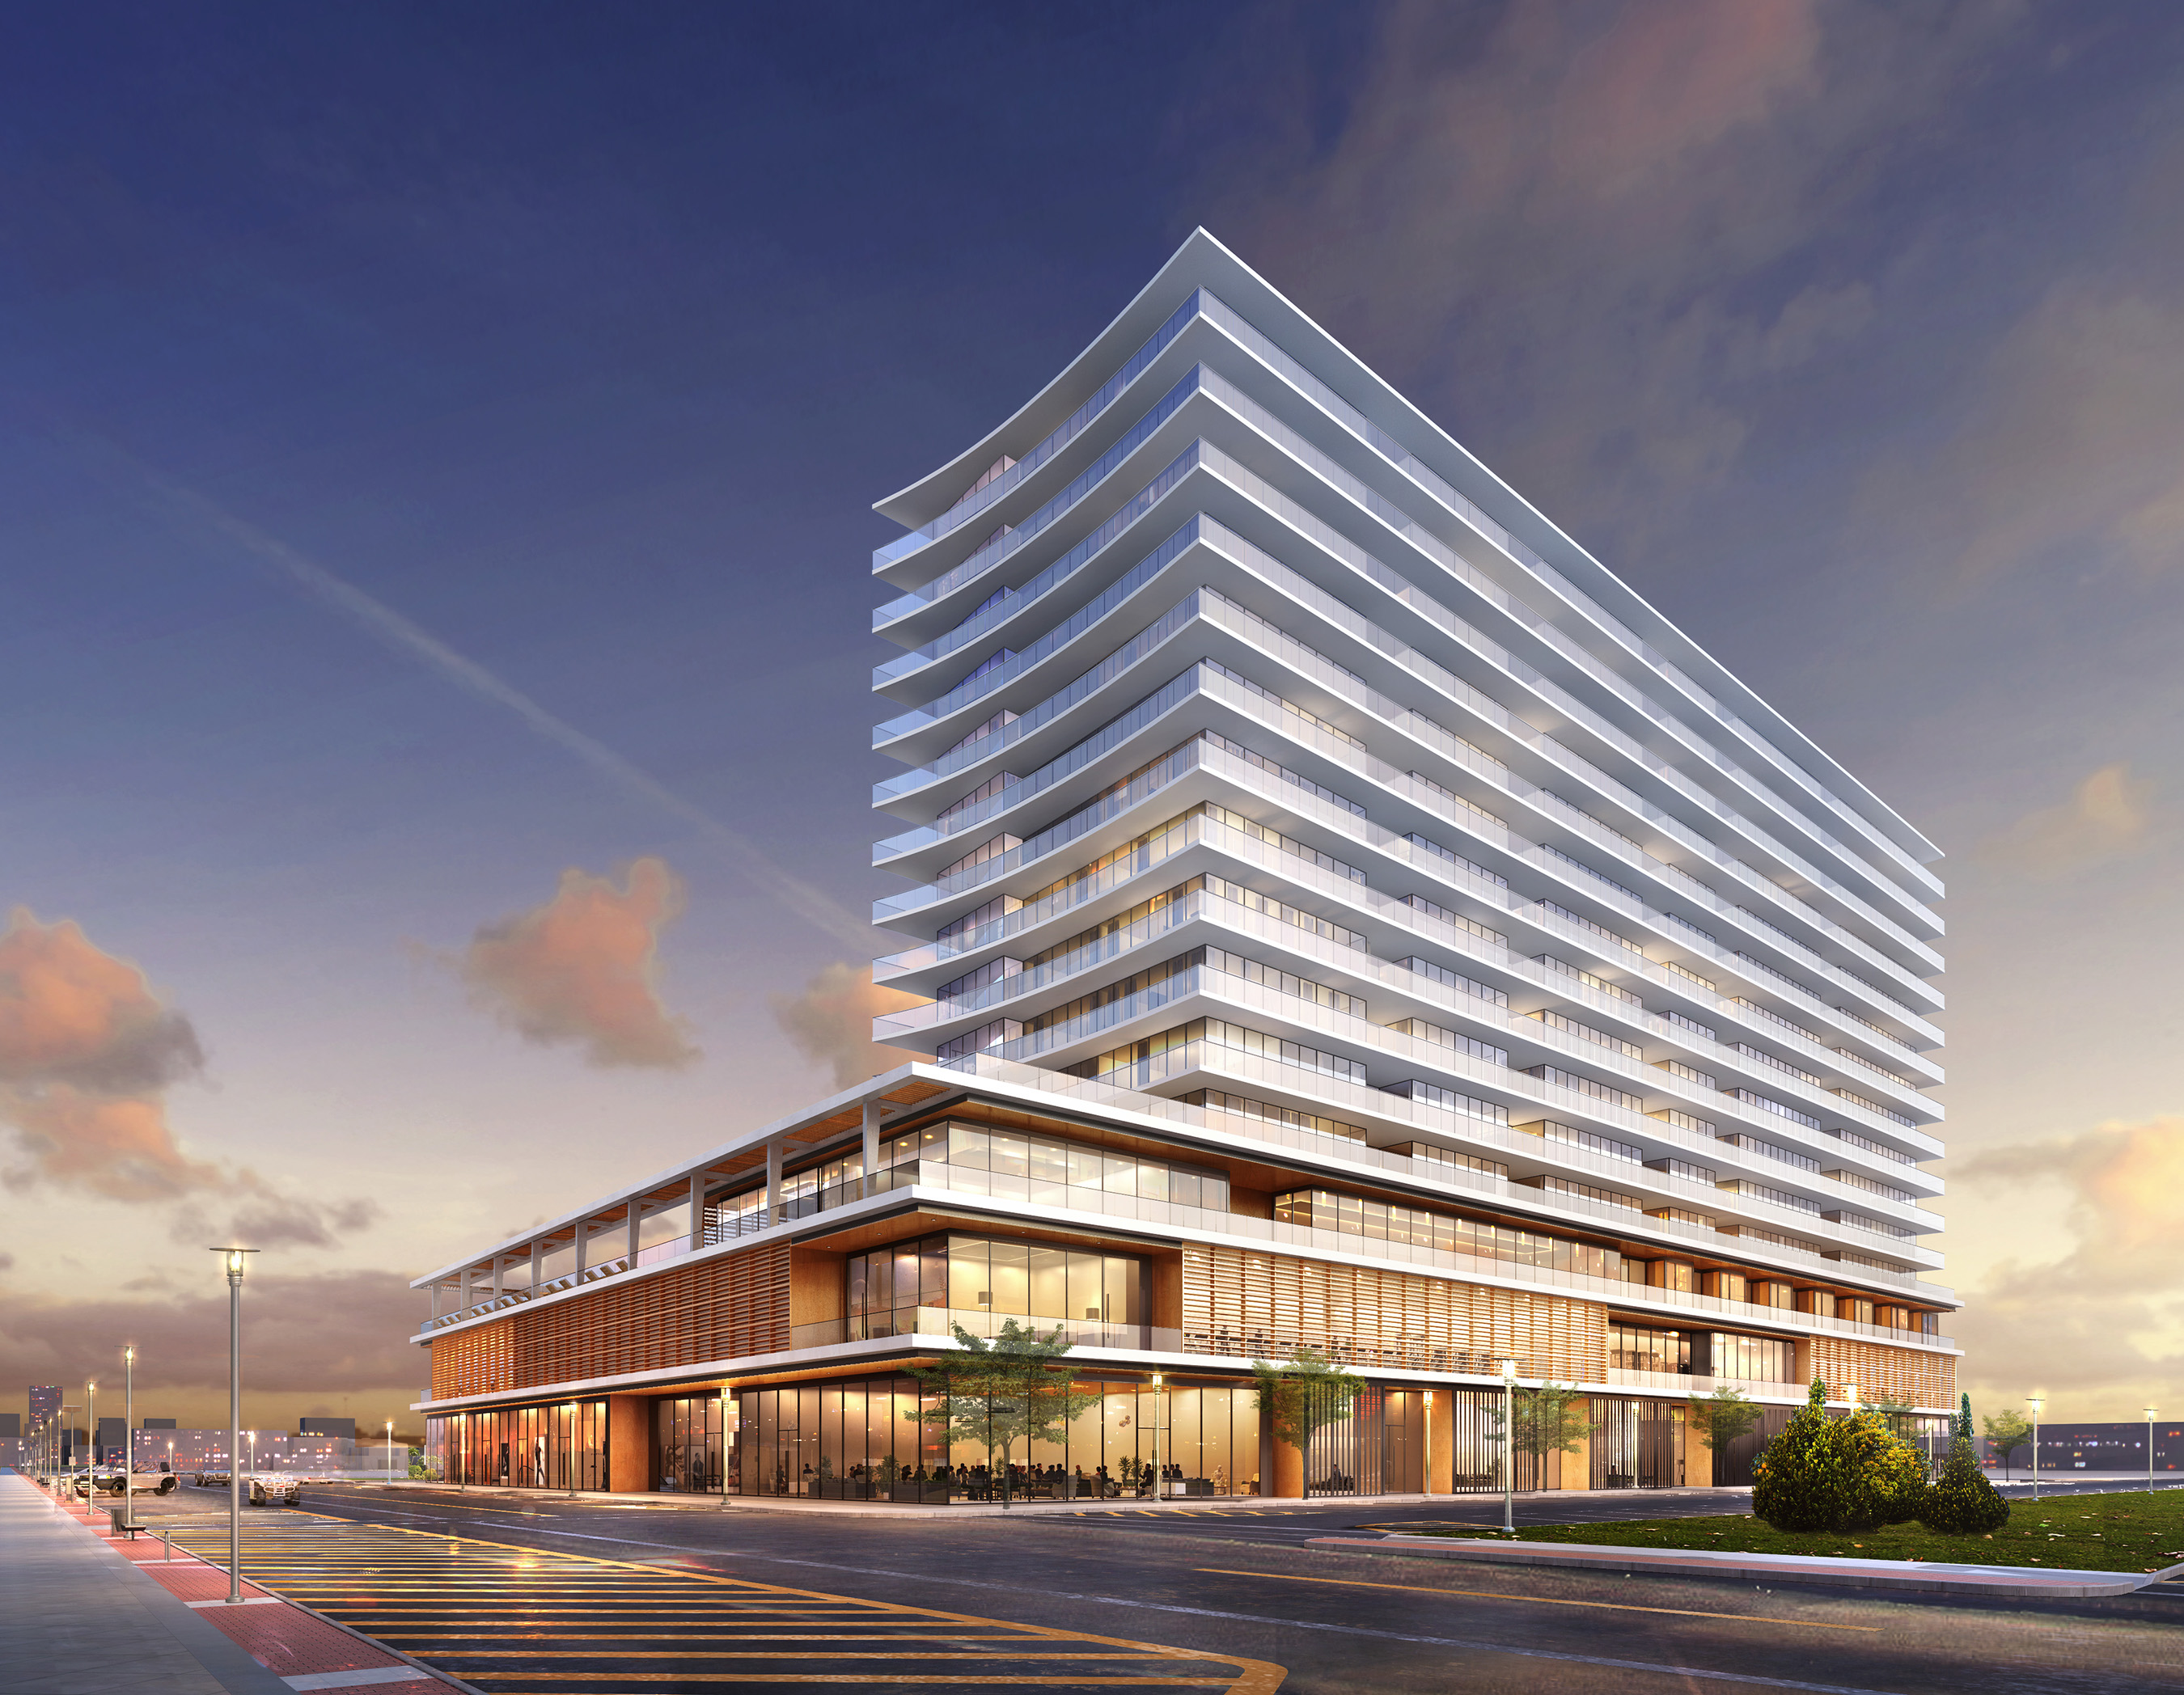 1101 Ocean, a landmark mixed-use hotel/condominium/retail project that will shine as one of the tallest buildings along the Jersey Shore